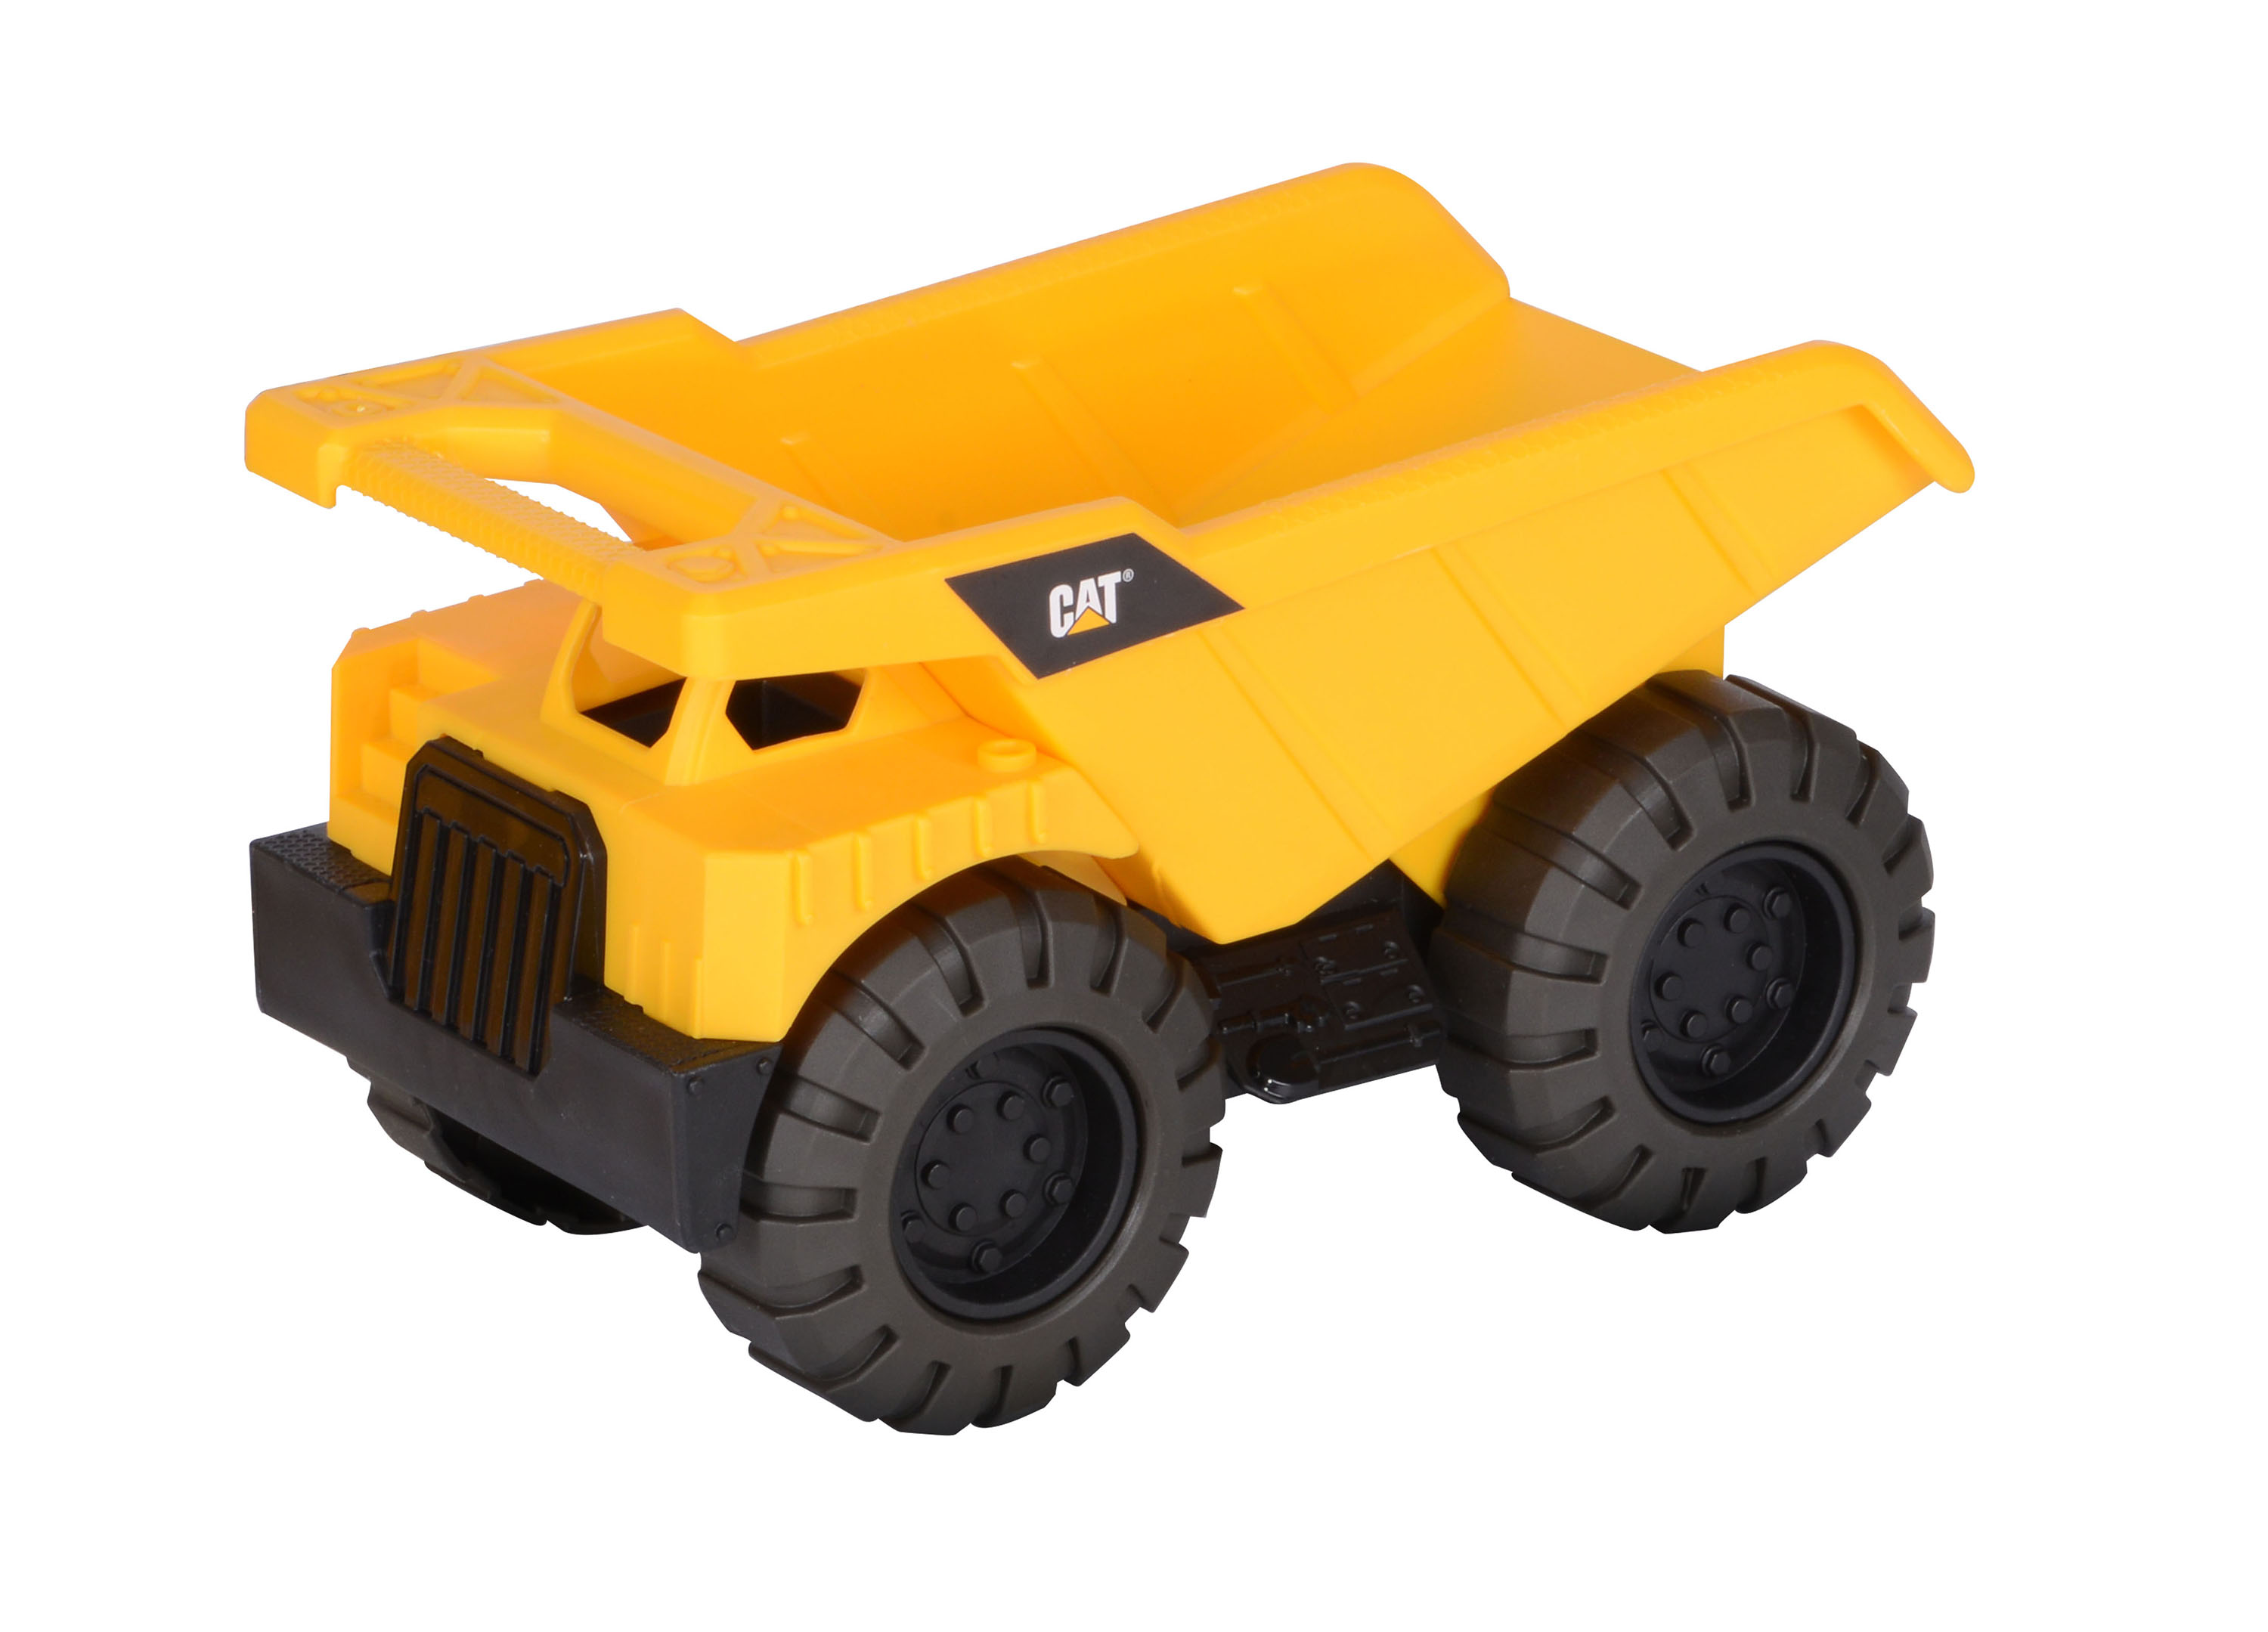 Caterpillar Construction Crew Dump Truck by Toy State International Limited